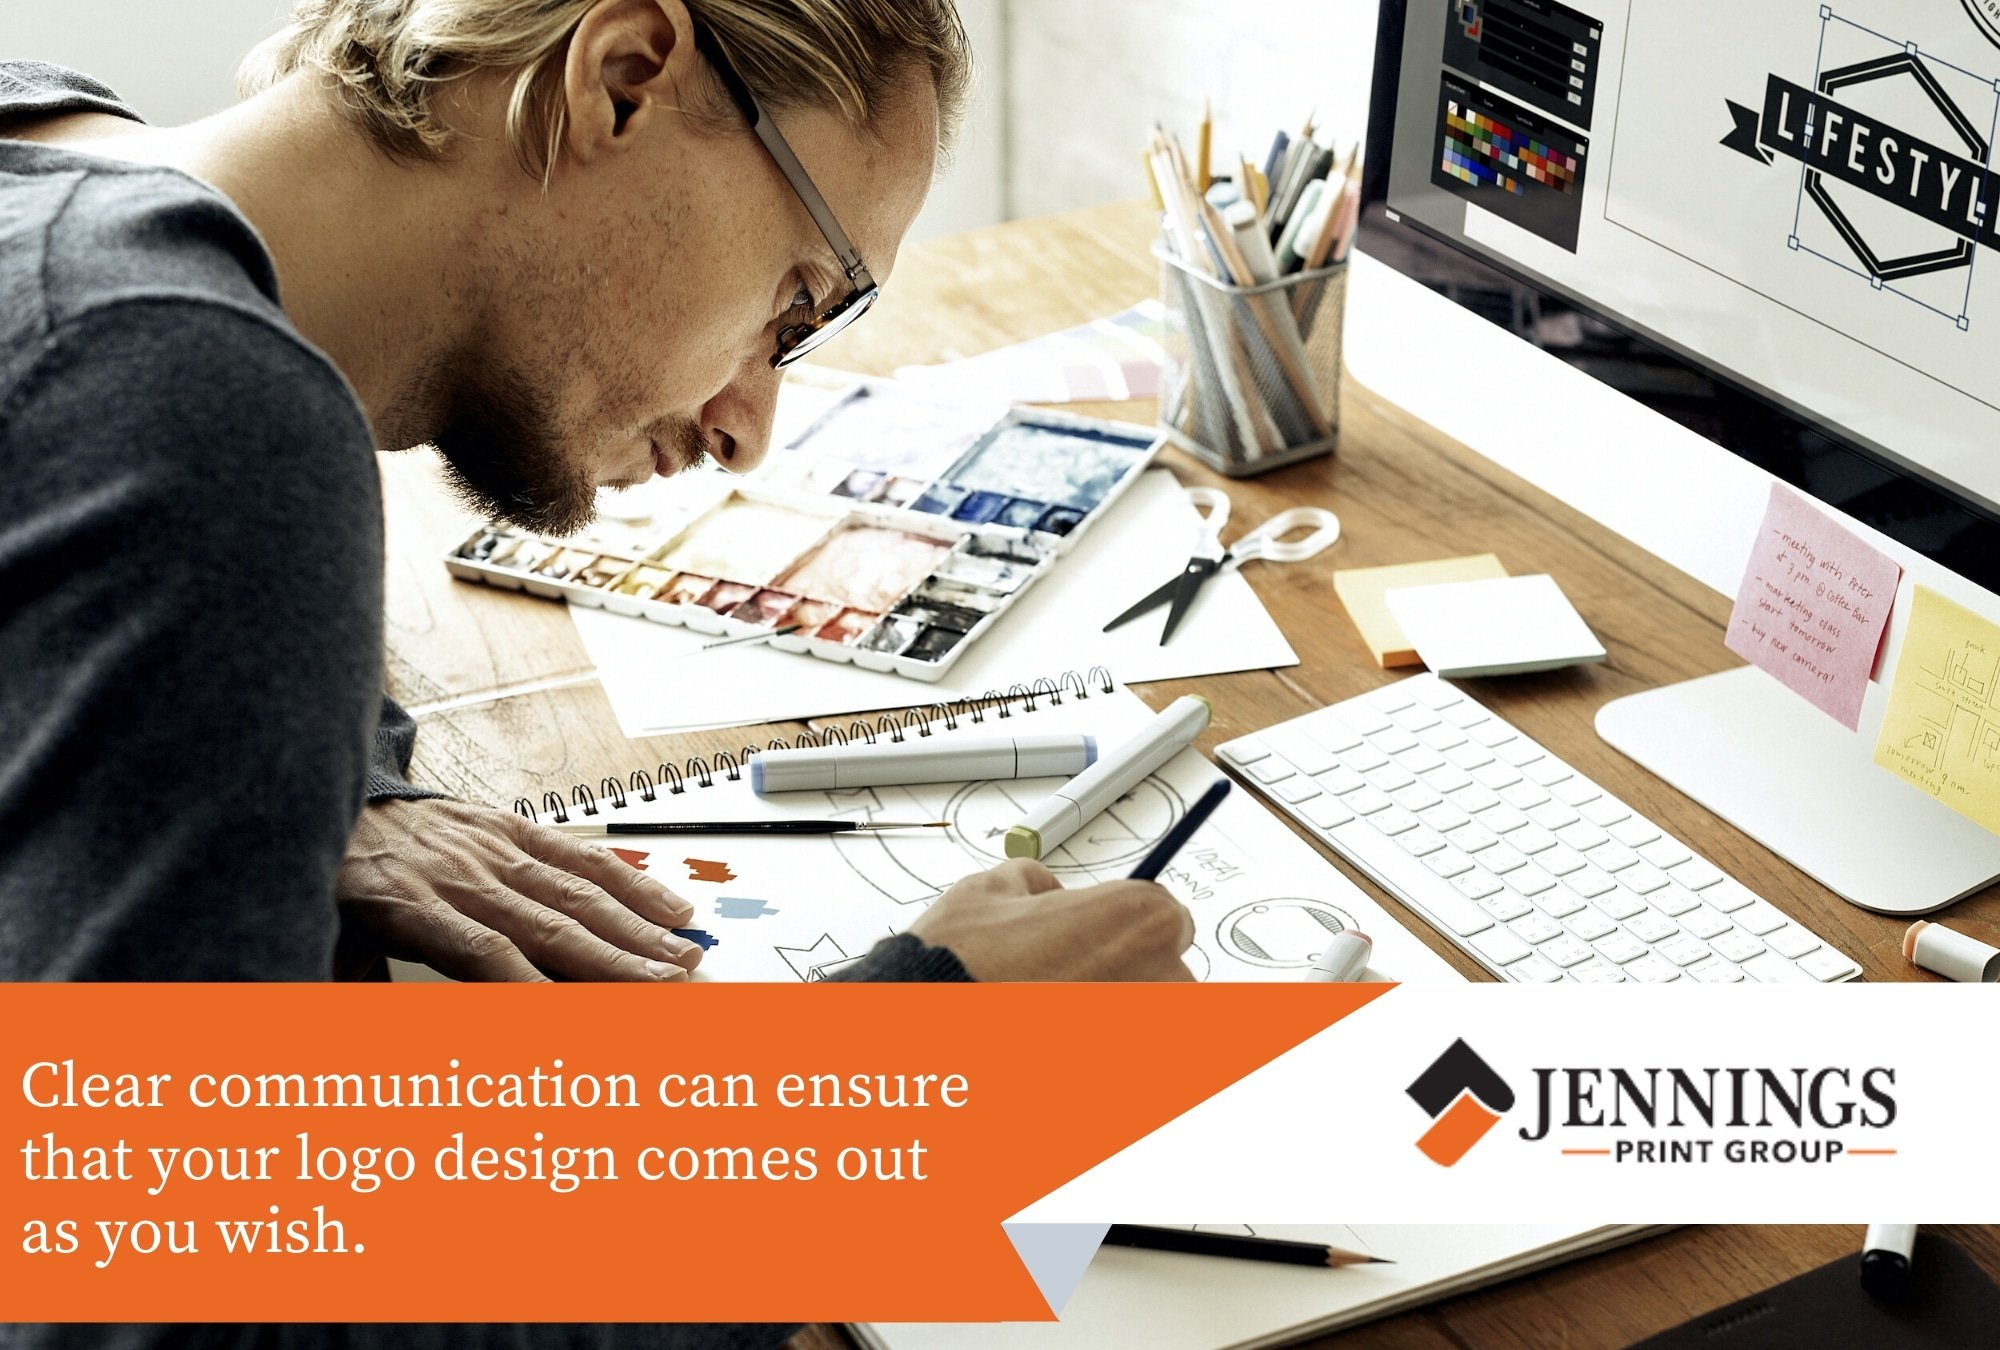 communicate clearly with your designer